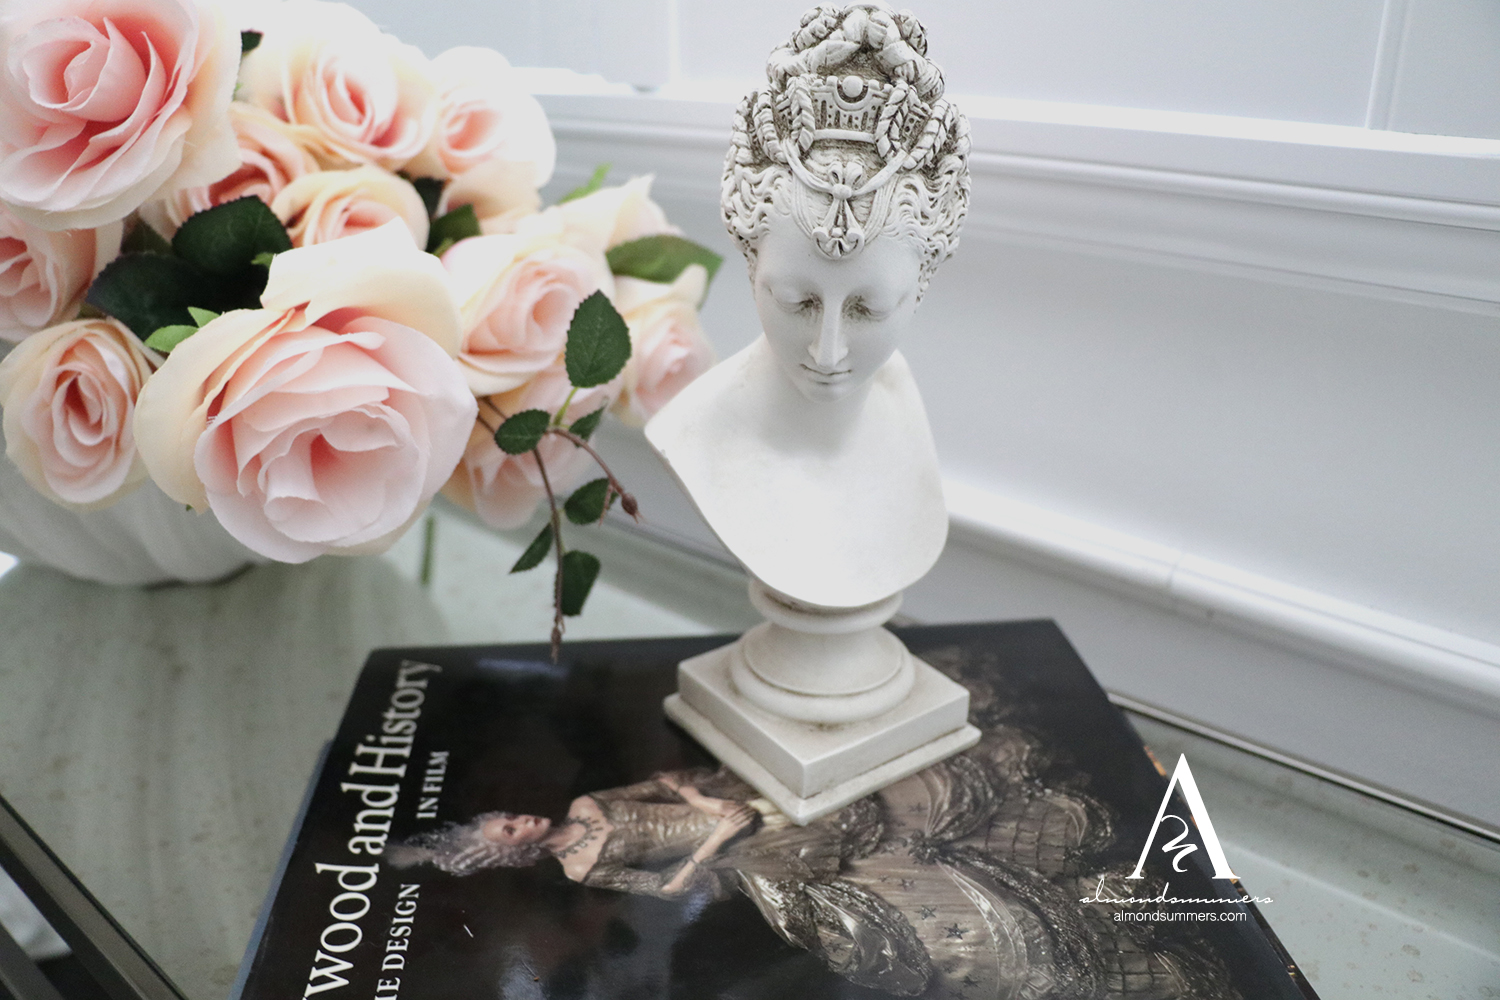 French Office Decor Ideas |Almond Summers Designs | Home Office | Office decor inspiration | French Bust Statues  Vintage French Sculptures